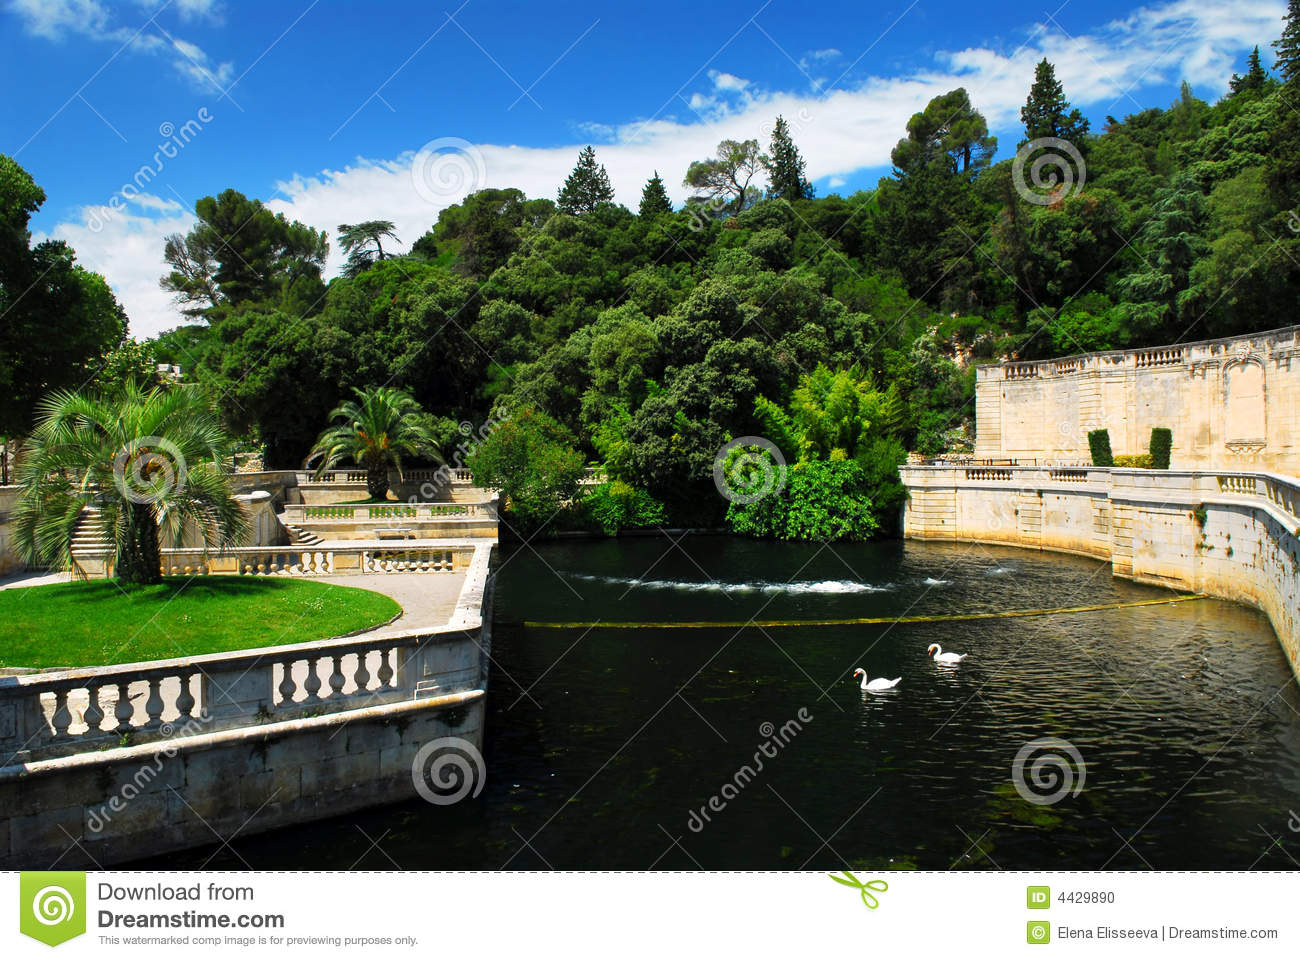 Jardin de la fontaine in nimes france stock photo image 4429890 - Jardin de la fontaine nimes limoges ...